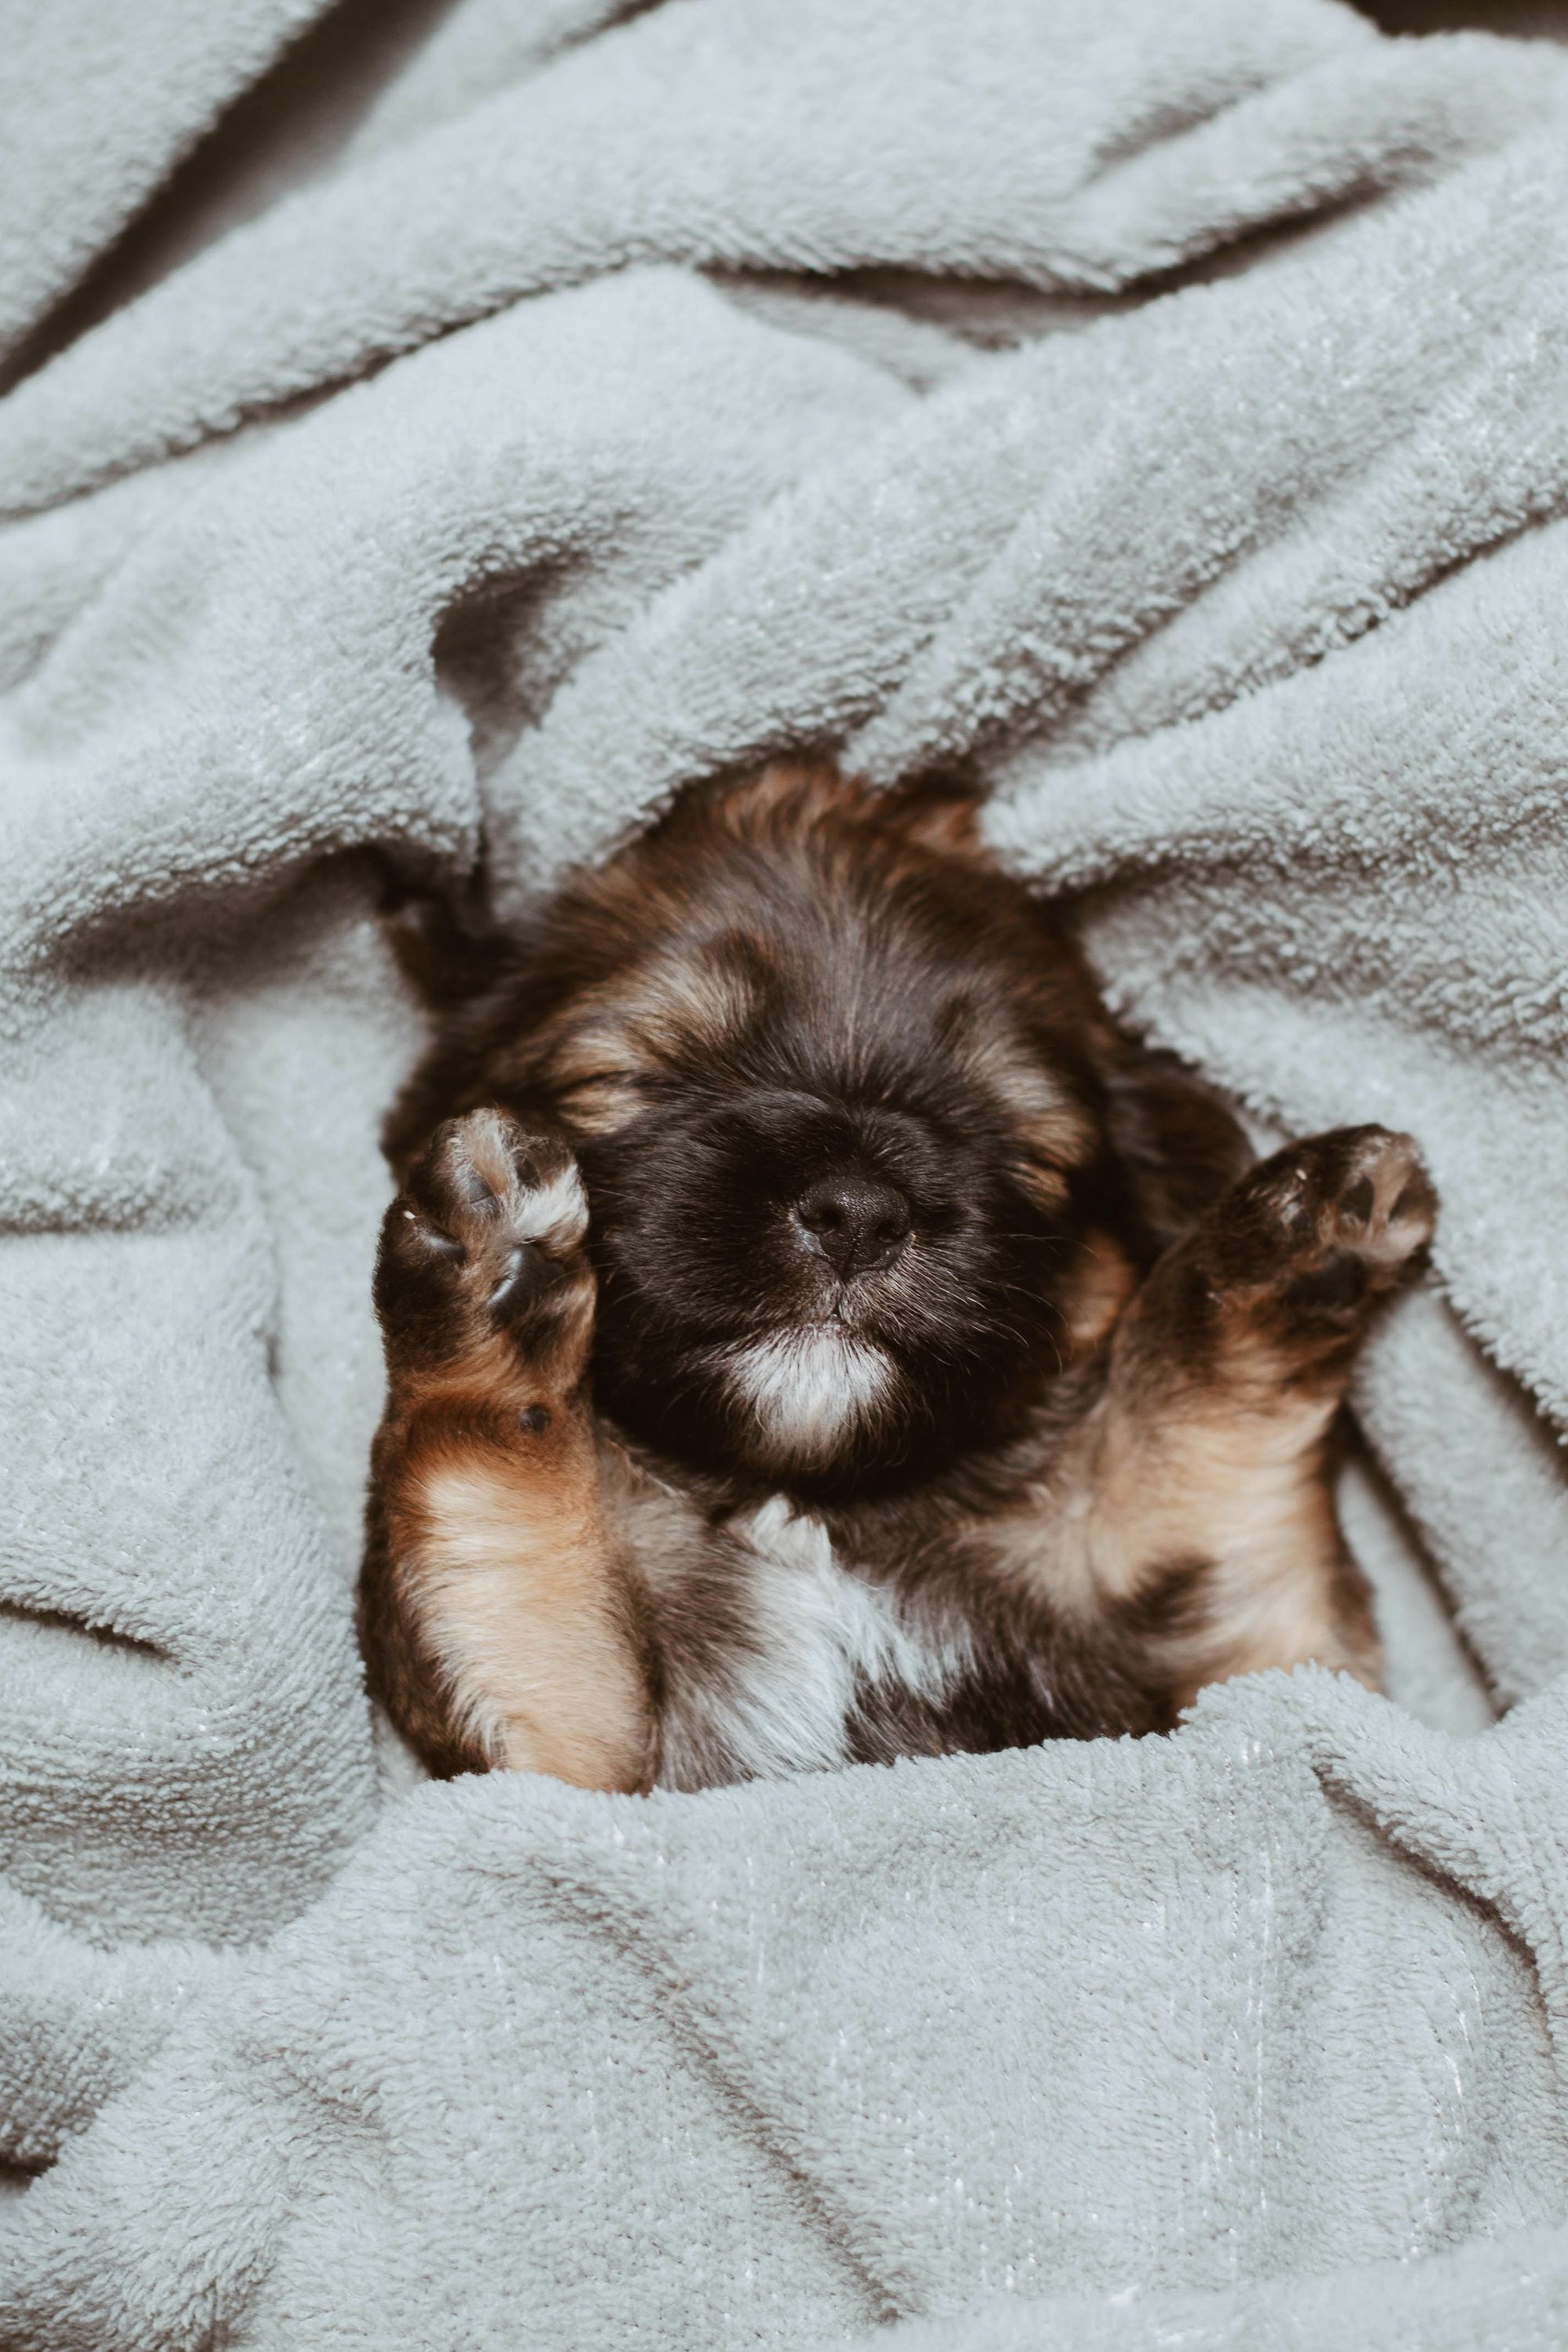 What Is Parvo? Puppy Sleeping on Its Back